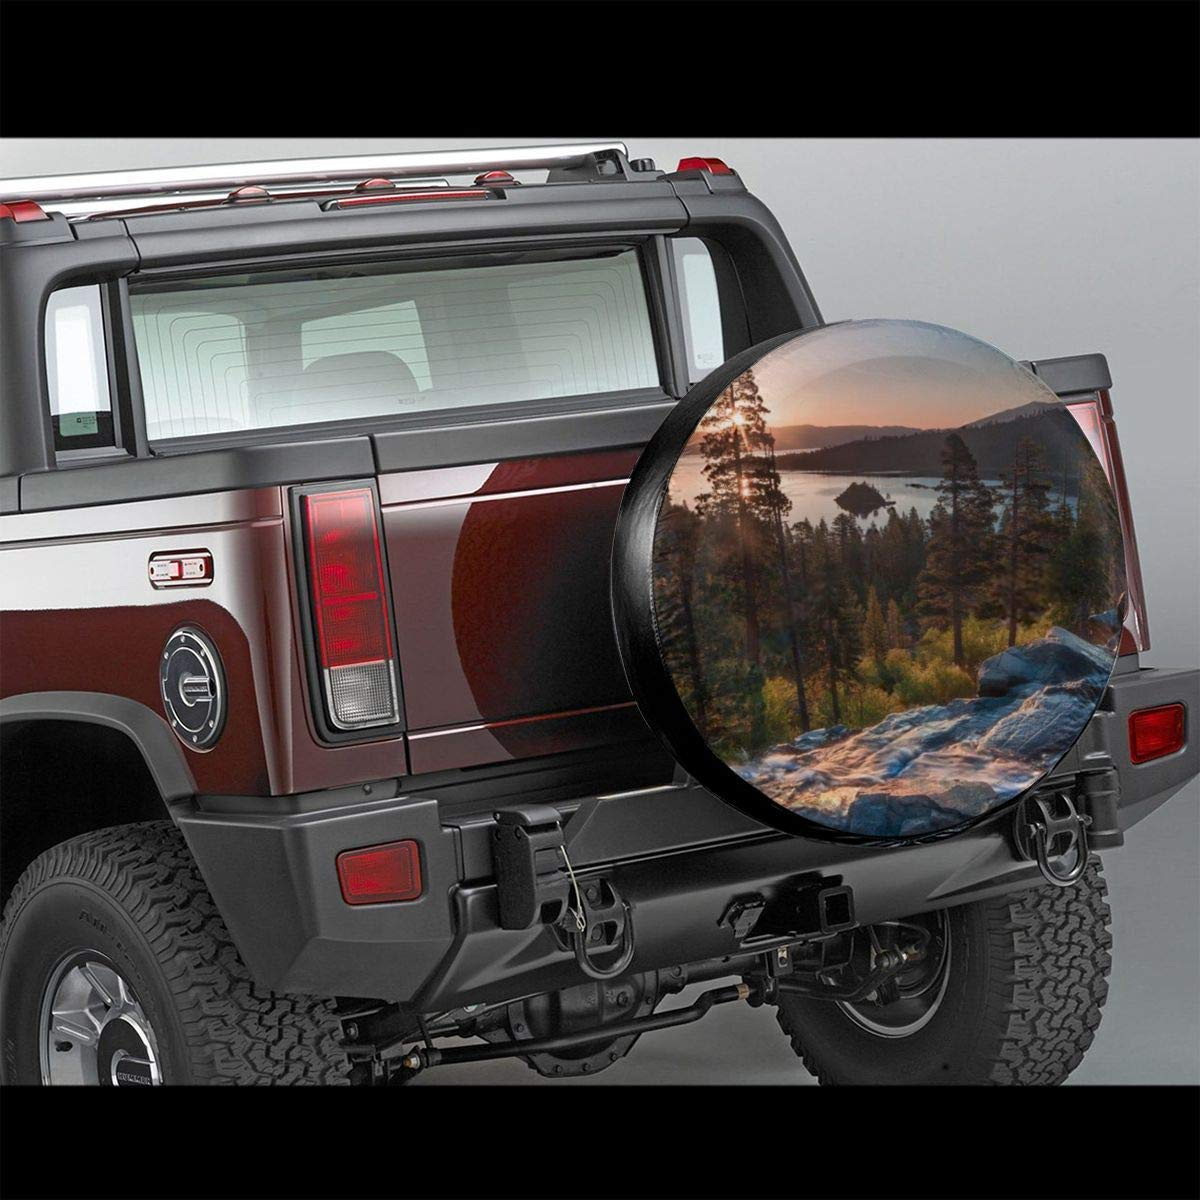 Idyllic American Landscape Waterfall Into The Forest Traveling Theme Romantic Wheel Cover with PVC Leather Waterproof Dust-Proof Fit for Jeep Belleeer Cubierta DE LA Rueda